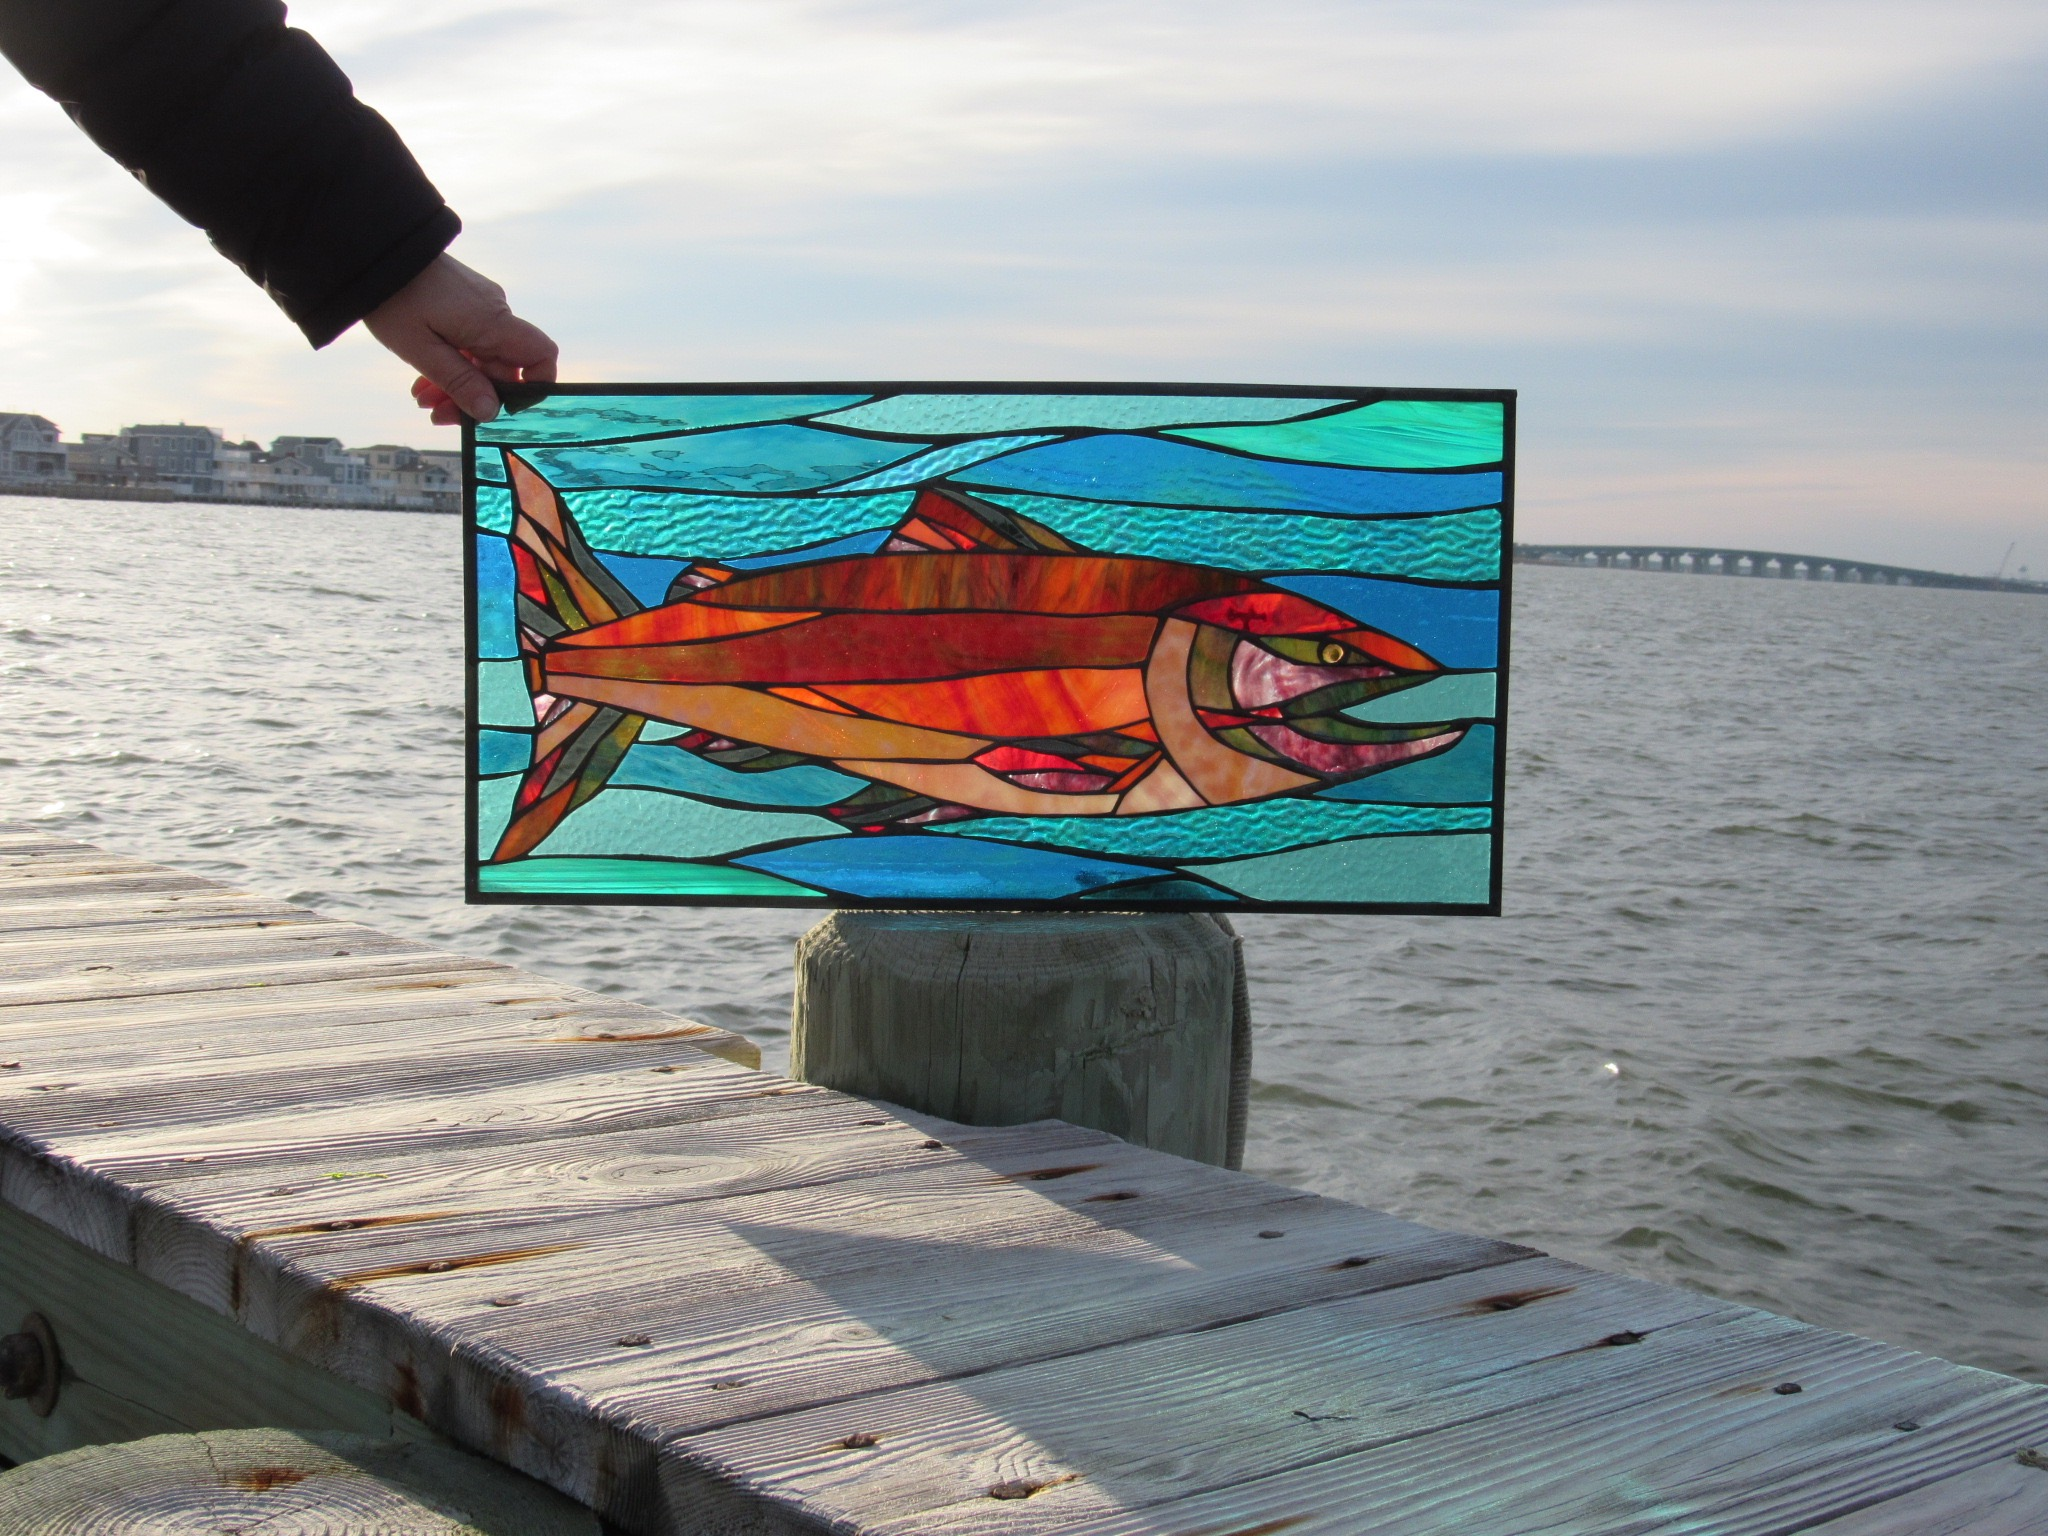 Is Dad a fisherman- or just a teller of tall tales? Either way, a custom stained glass of his favorite fish is an awesome way to celebrate his love of the water!